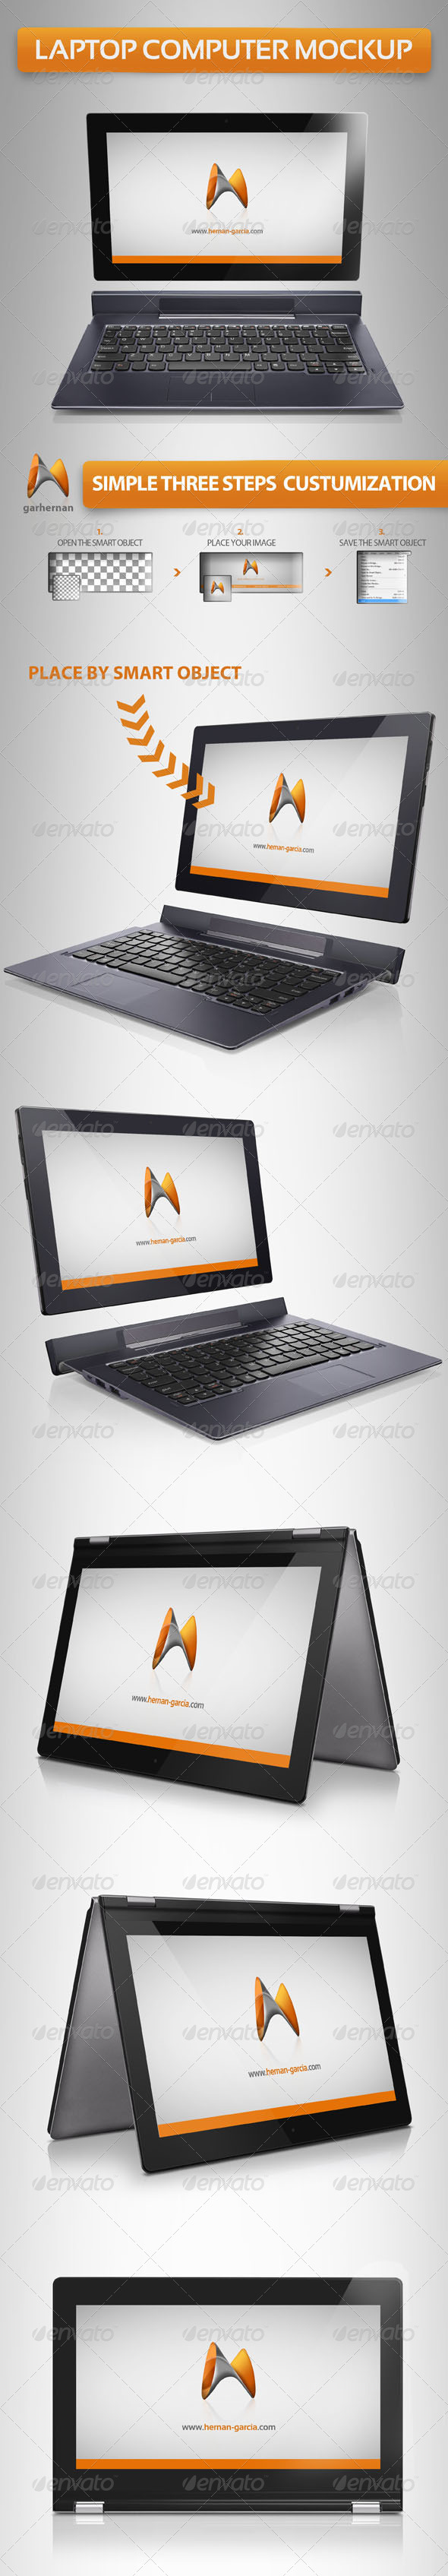 GraphicRiver Laptop Computer Mockup 5220190